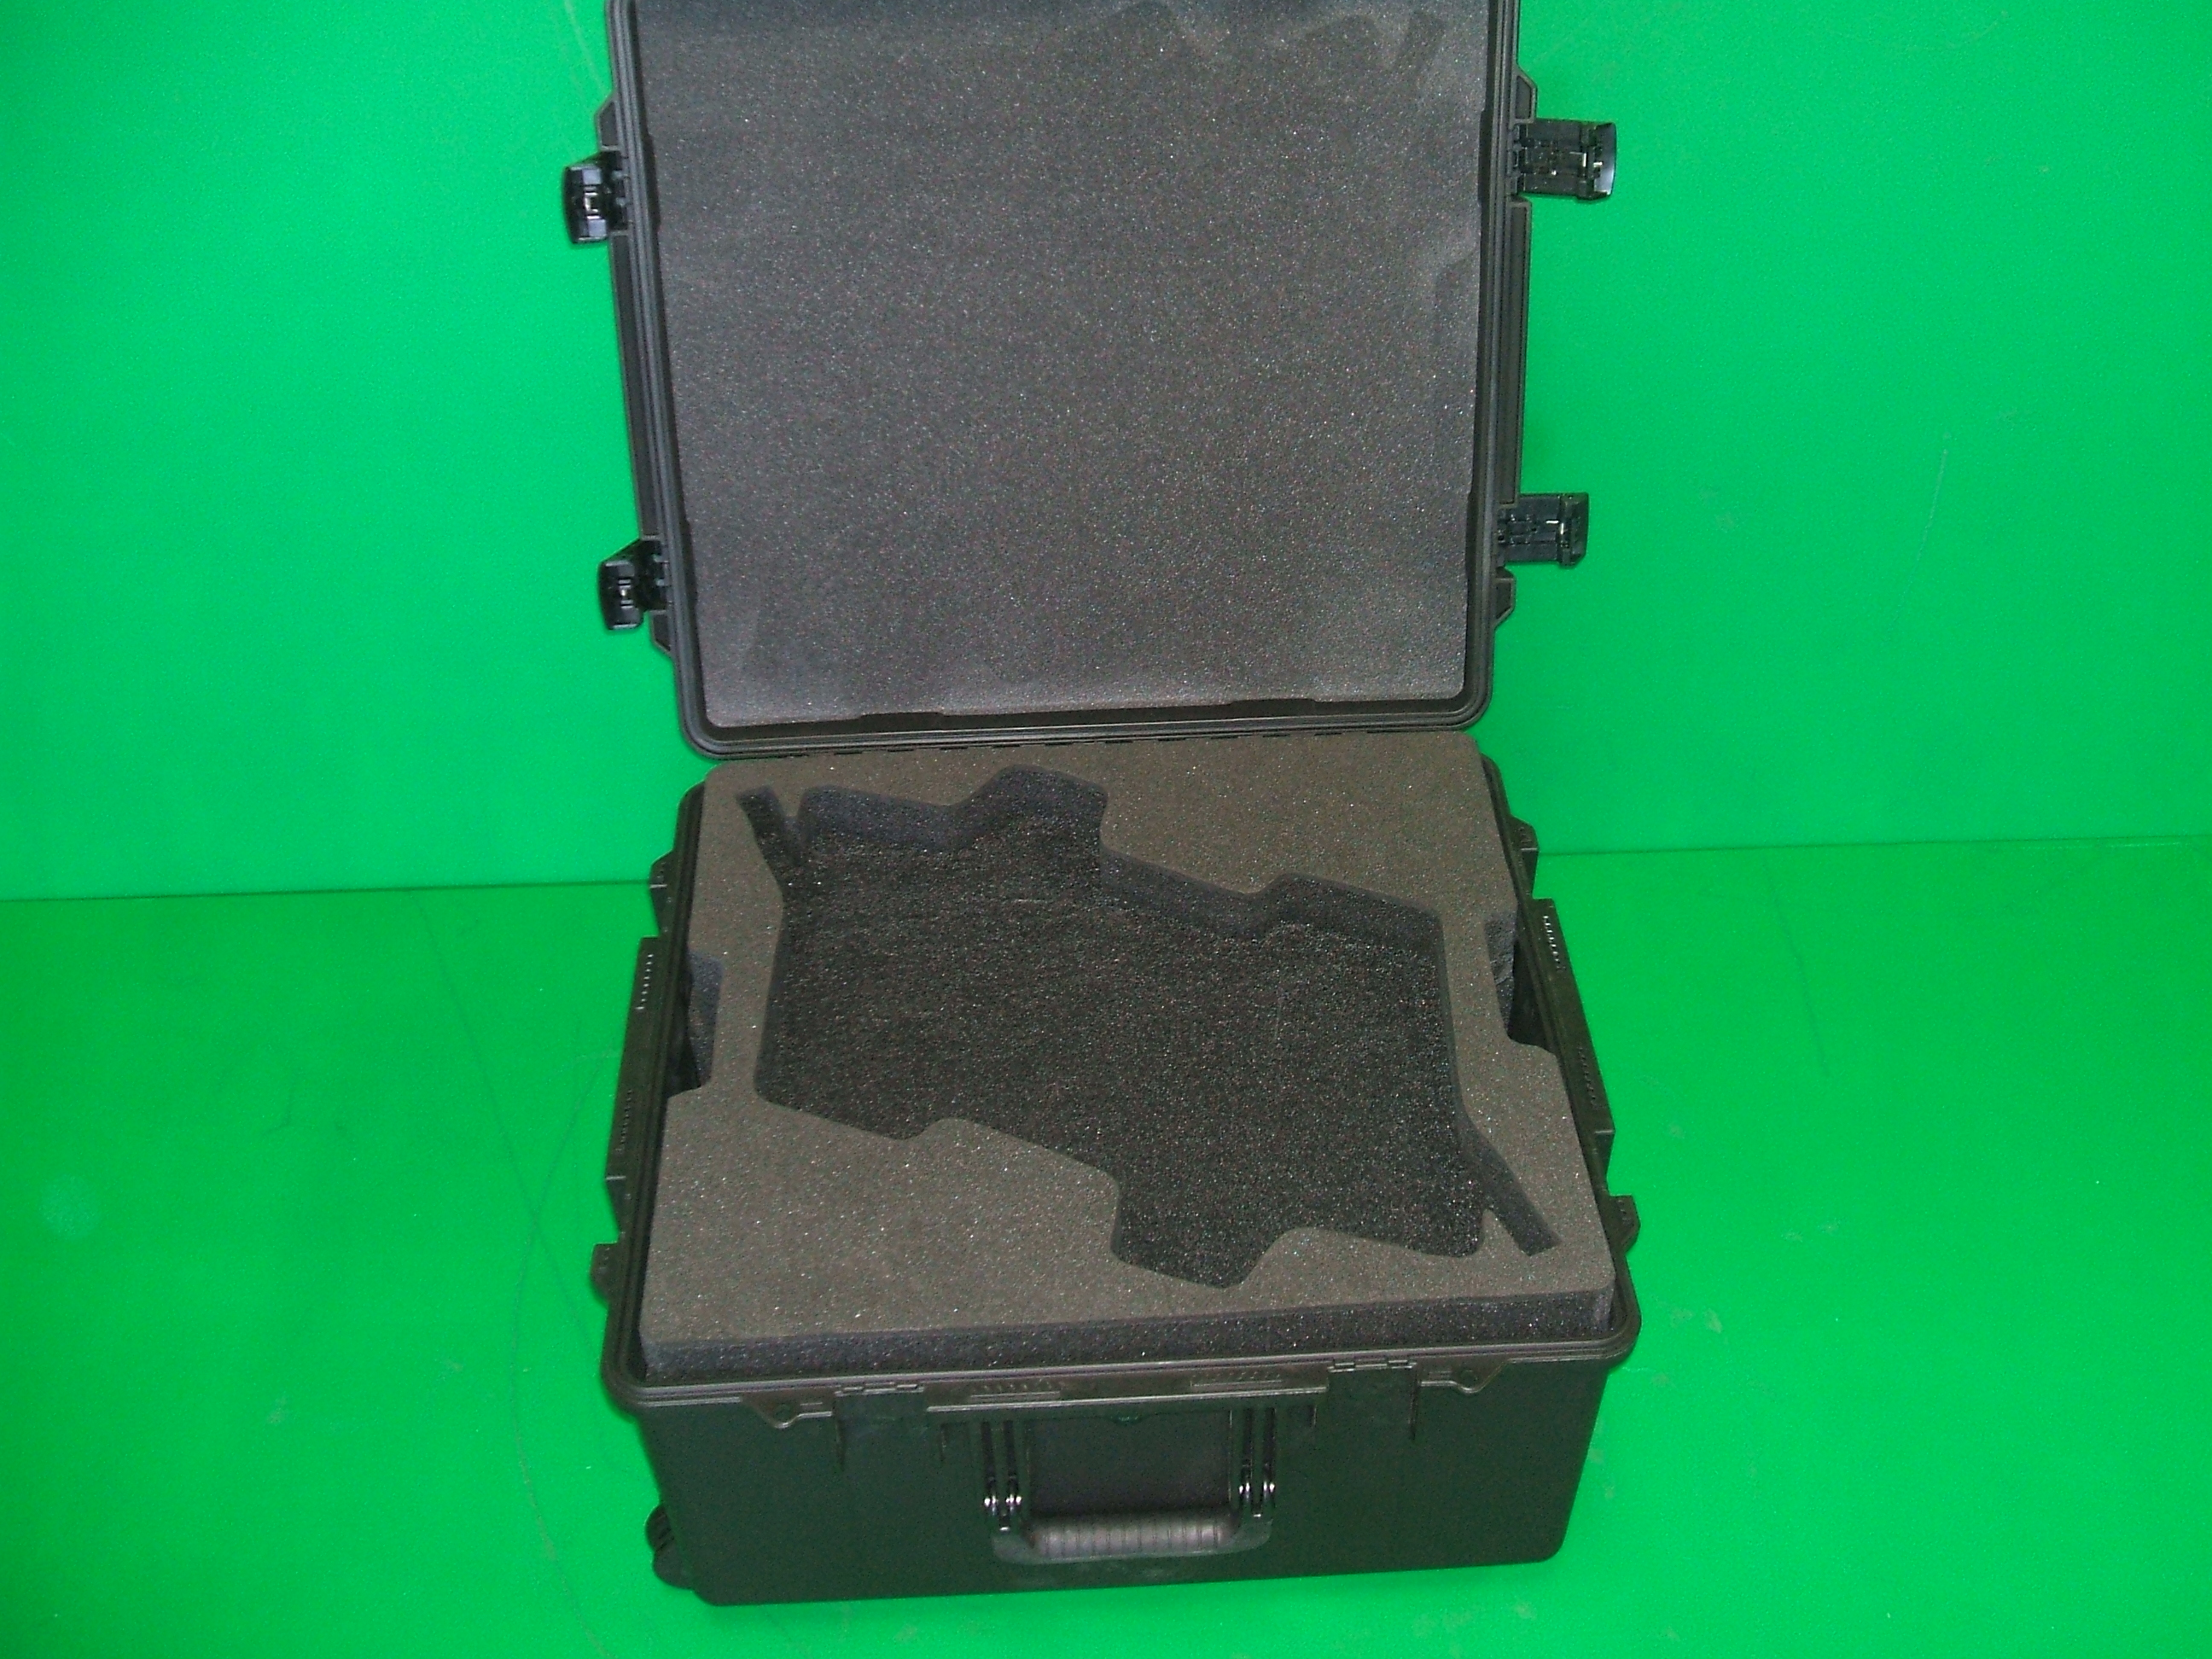 Print # 6004 - Pelican iM2875 Case with Custom Foam Insert for (2) Shure UA8700USTV Antennas with Cable Compartment Below By Nelson Case Corp